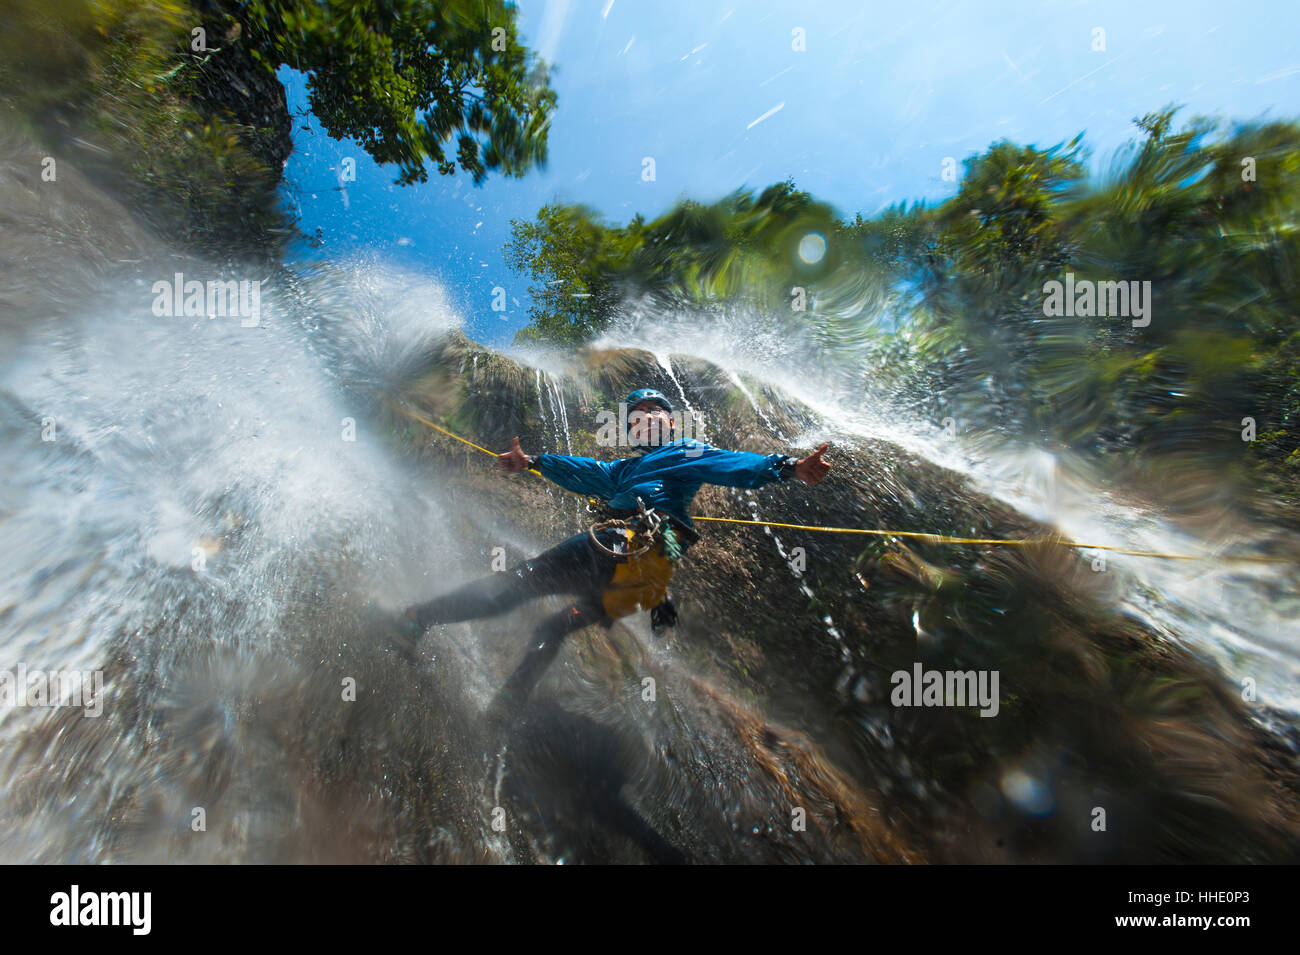 A man pauses to smile for the camera while canyoning in a waterfall, Nepal - Stock Image